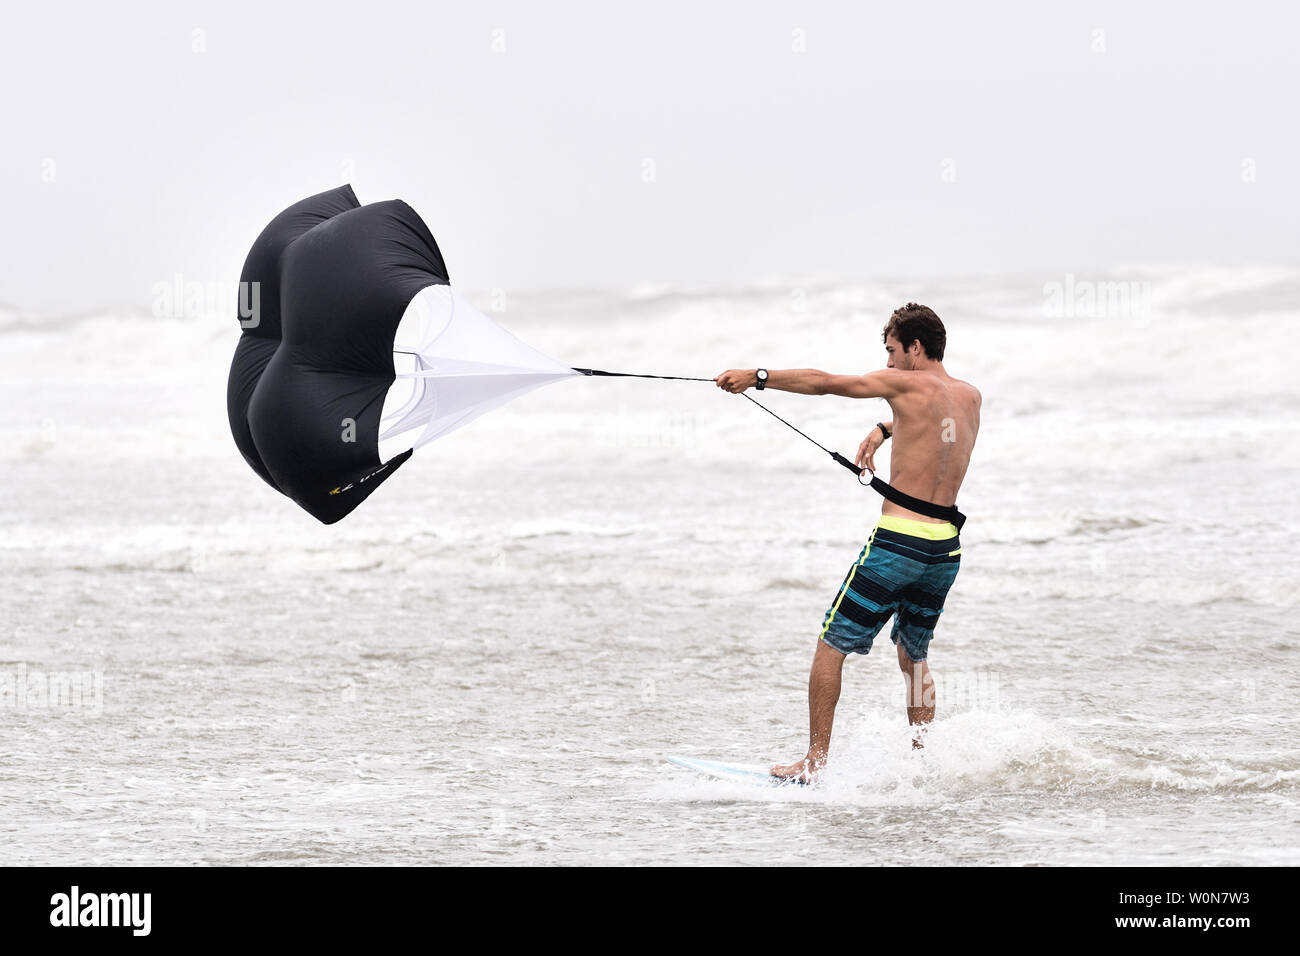 A young man uses a raining parachute to pull his boogie board along the incoming tide as winds reach 50-mph along the coast from Tropical Storm Hermine in Isle of Palms, South Carolina, on September 2, 2016.  Beach goers were discouraged from entering the water due to rip currents, turbulent waves and winds exceeding 50-mph.        Photo by Richard Ellis/UPI Stock Photo